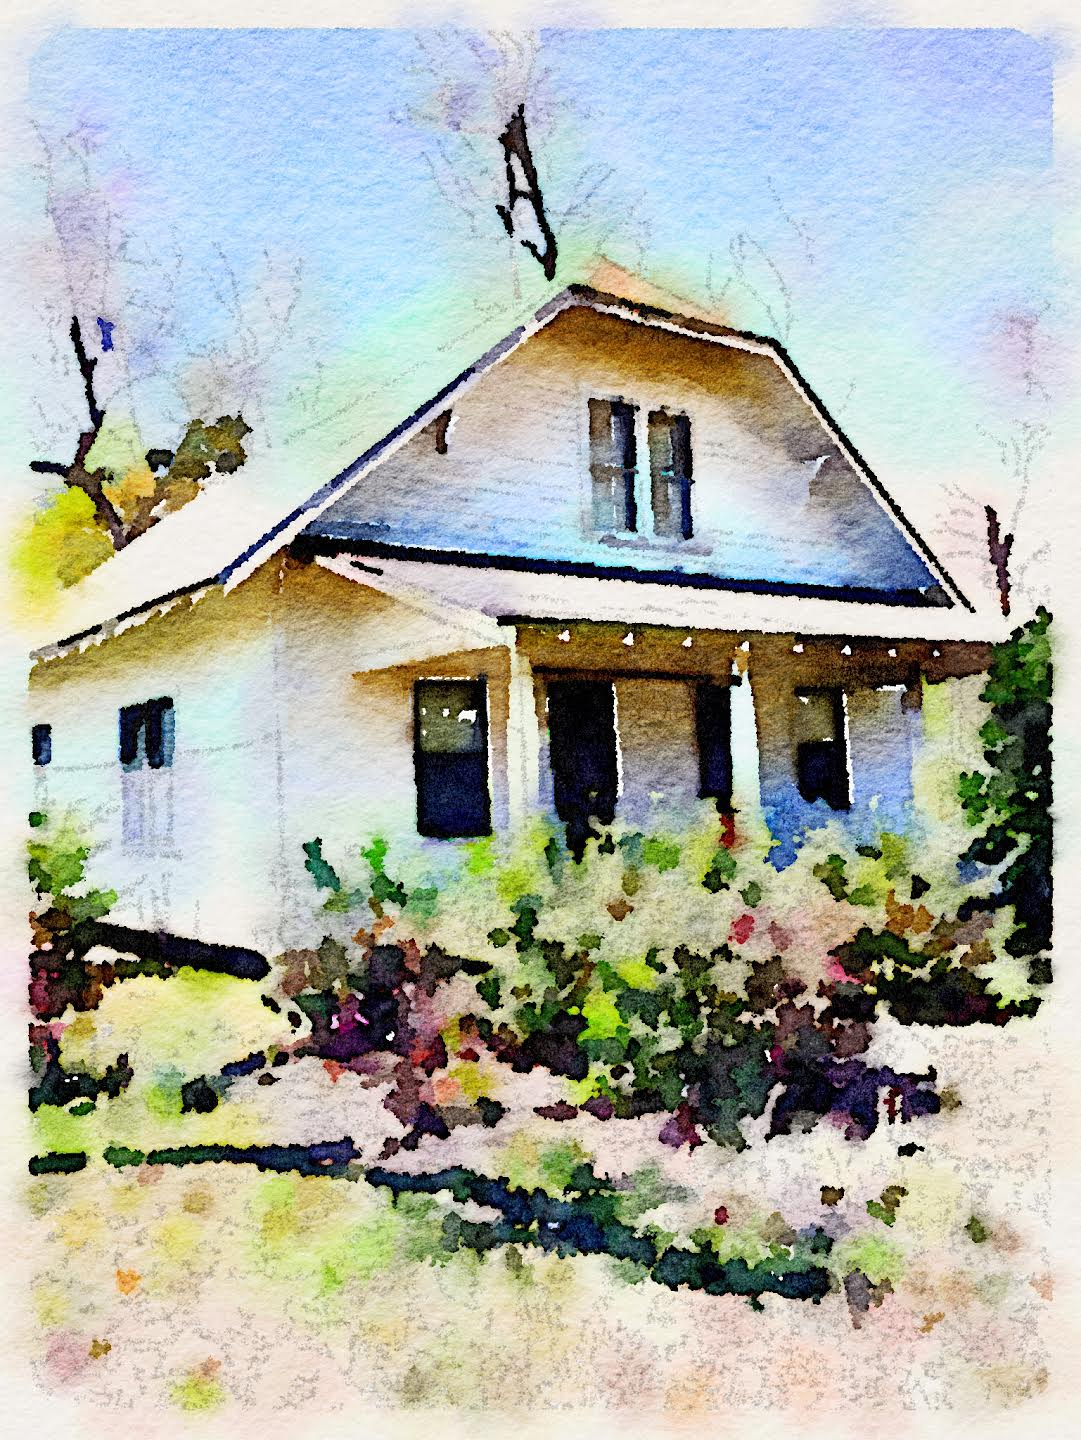 Artwork I had created of our little farmhouse that I had planned on giving the owner to remember her family home.